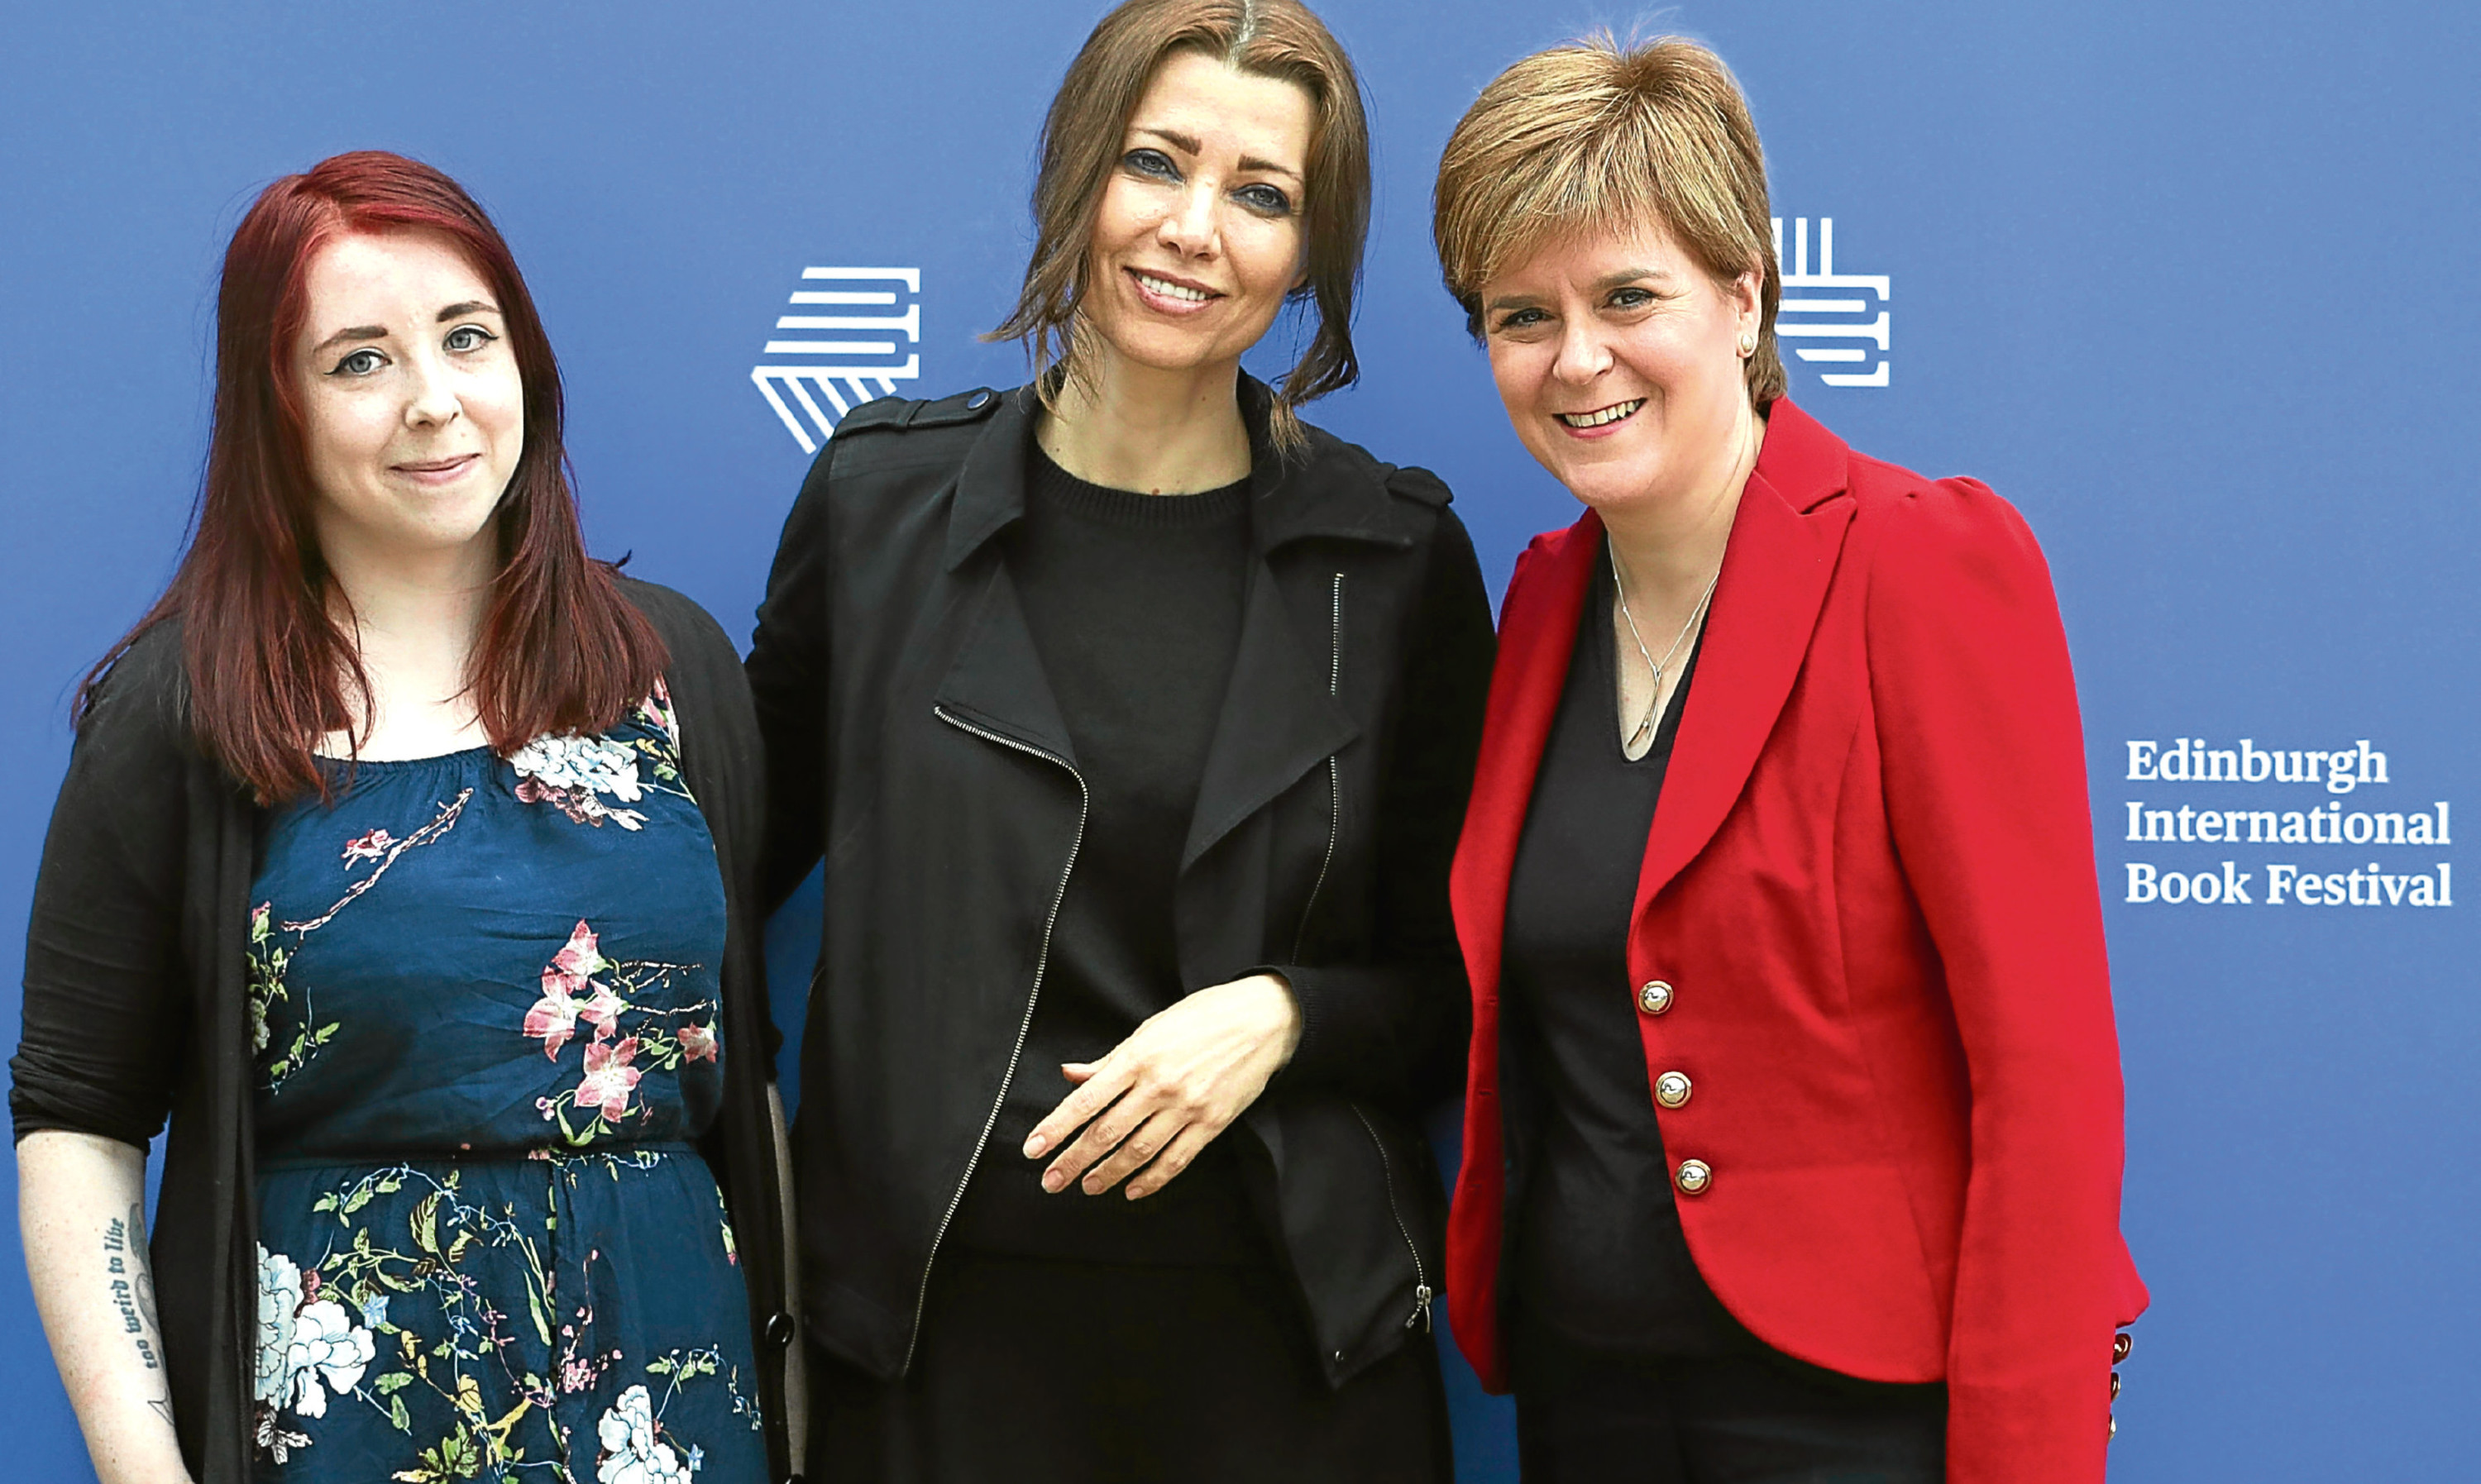 First Minister Nicola Sturgeon with Heather McDaid, left, and Elif Shafak at the Edinburgh International Book Festival.